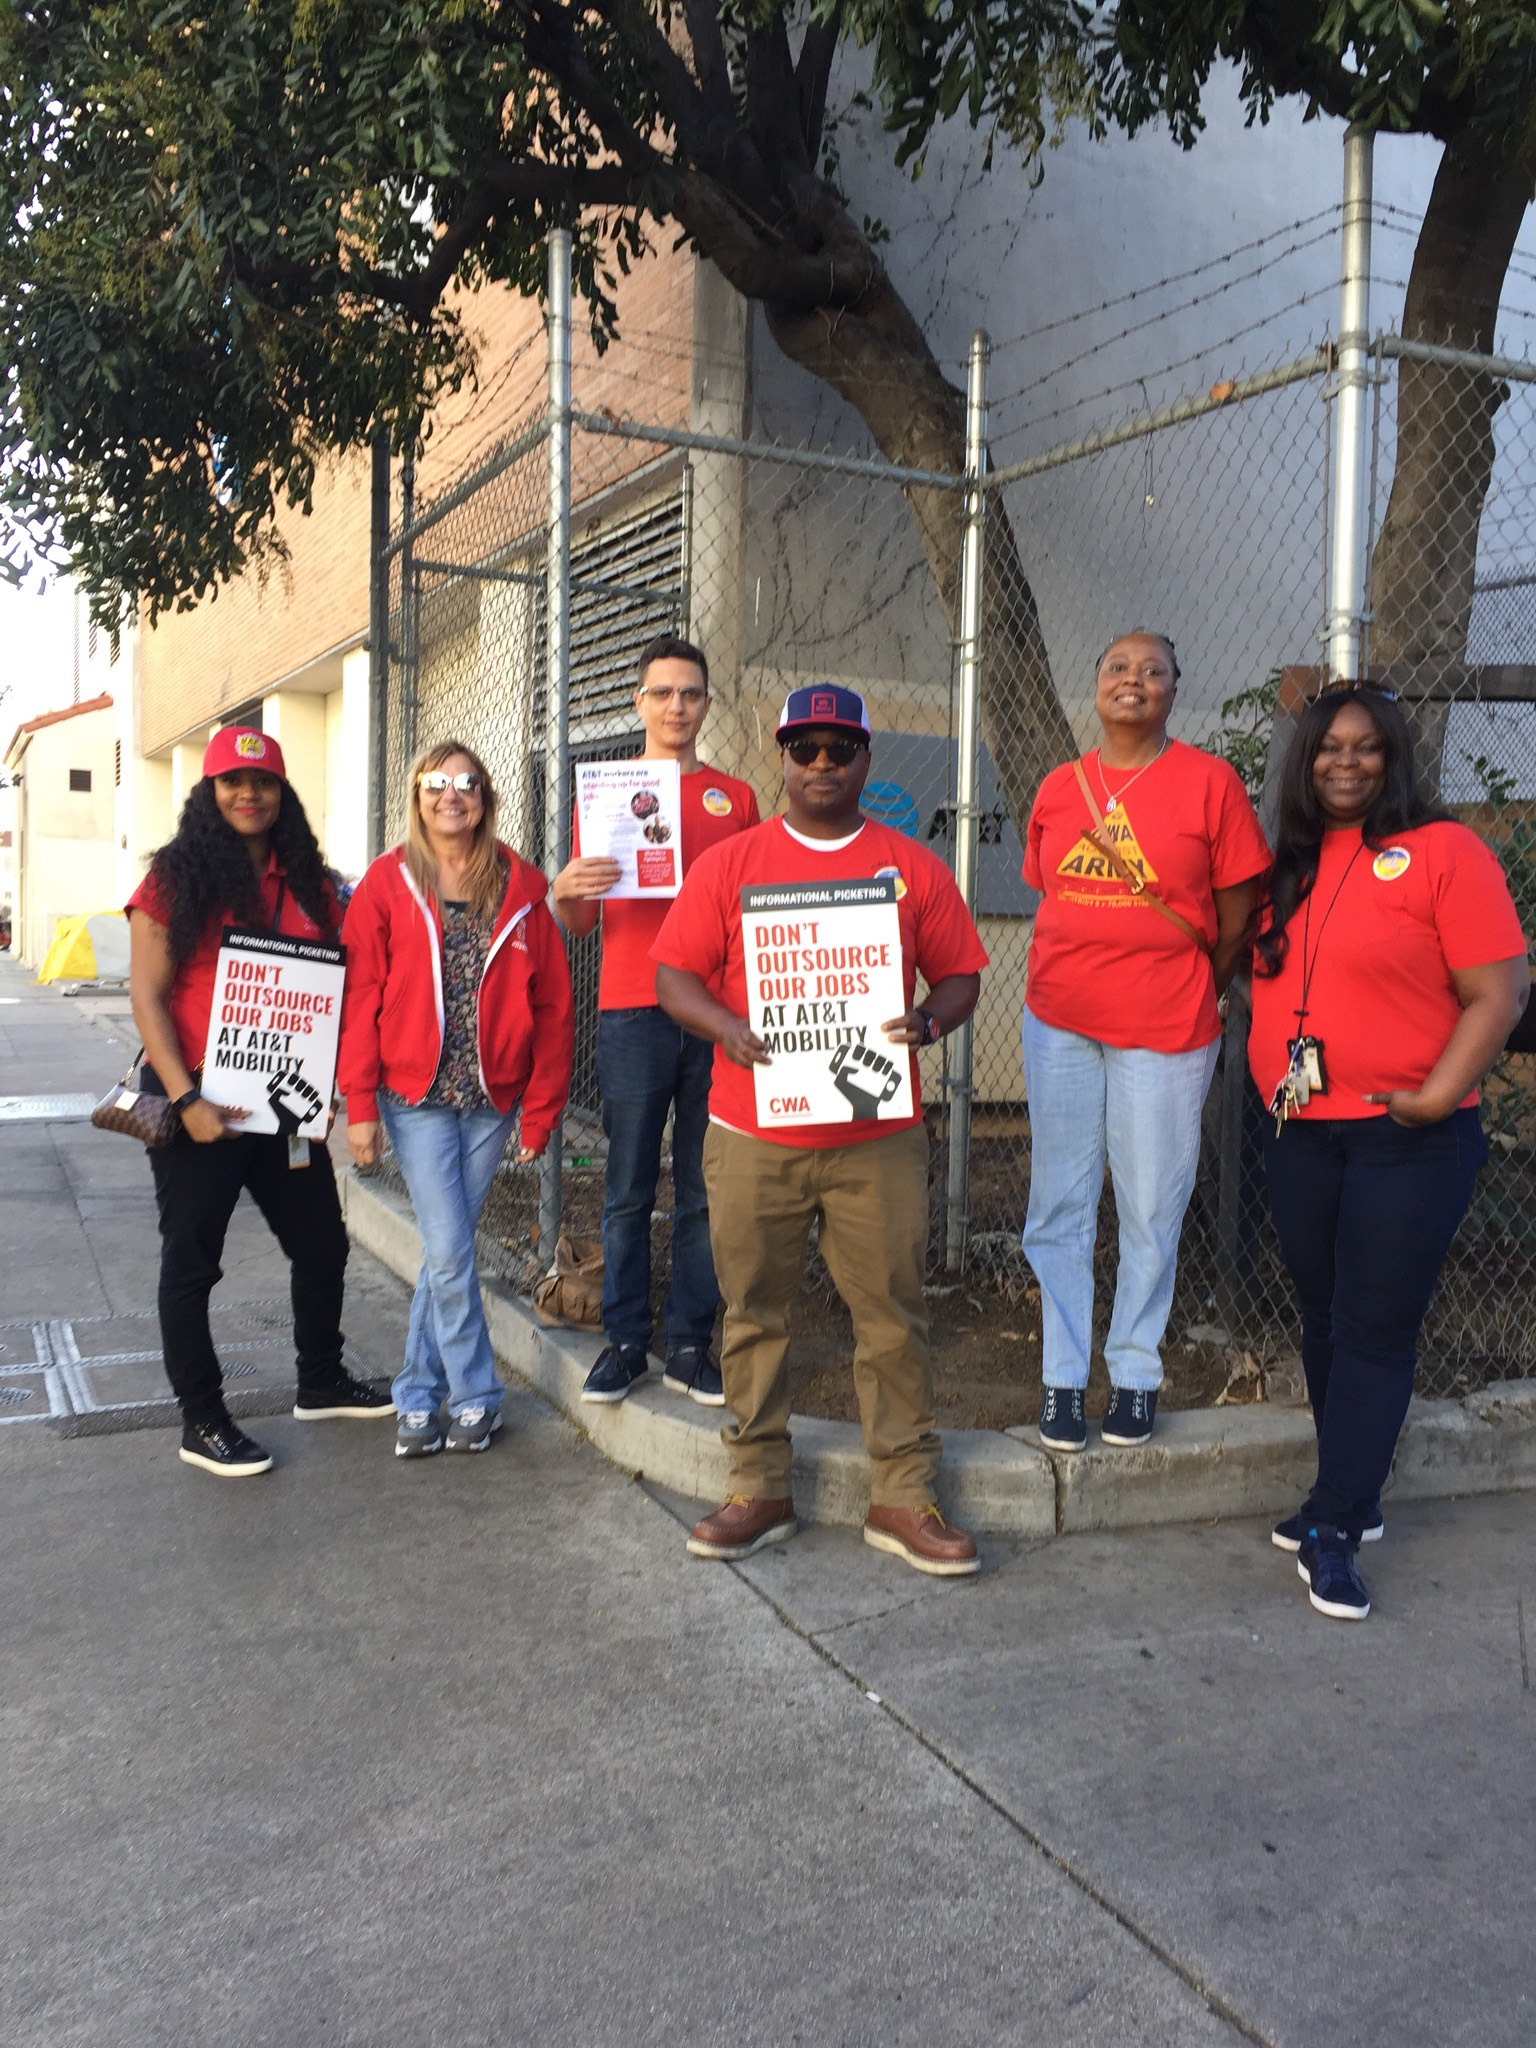 Local 9003 shows Solidarity in Los Angeles